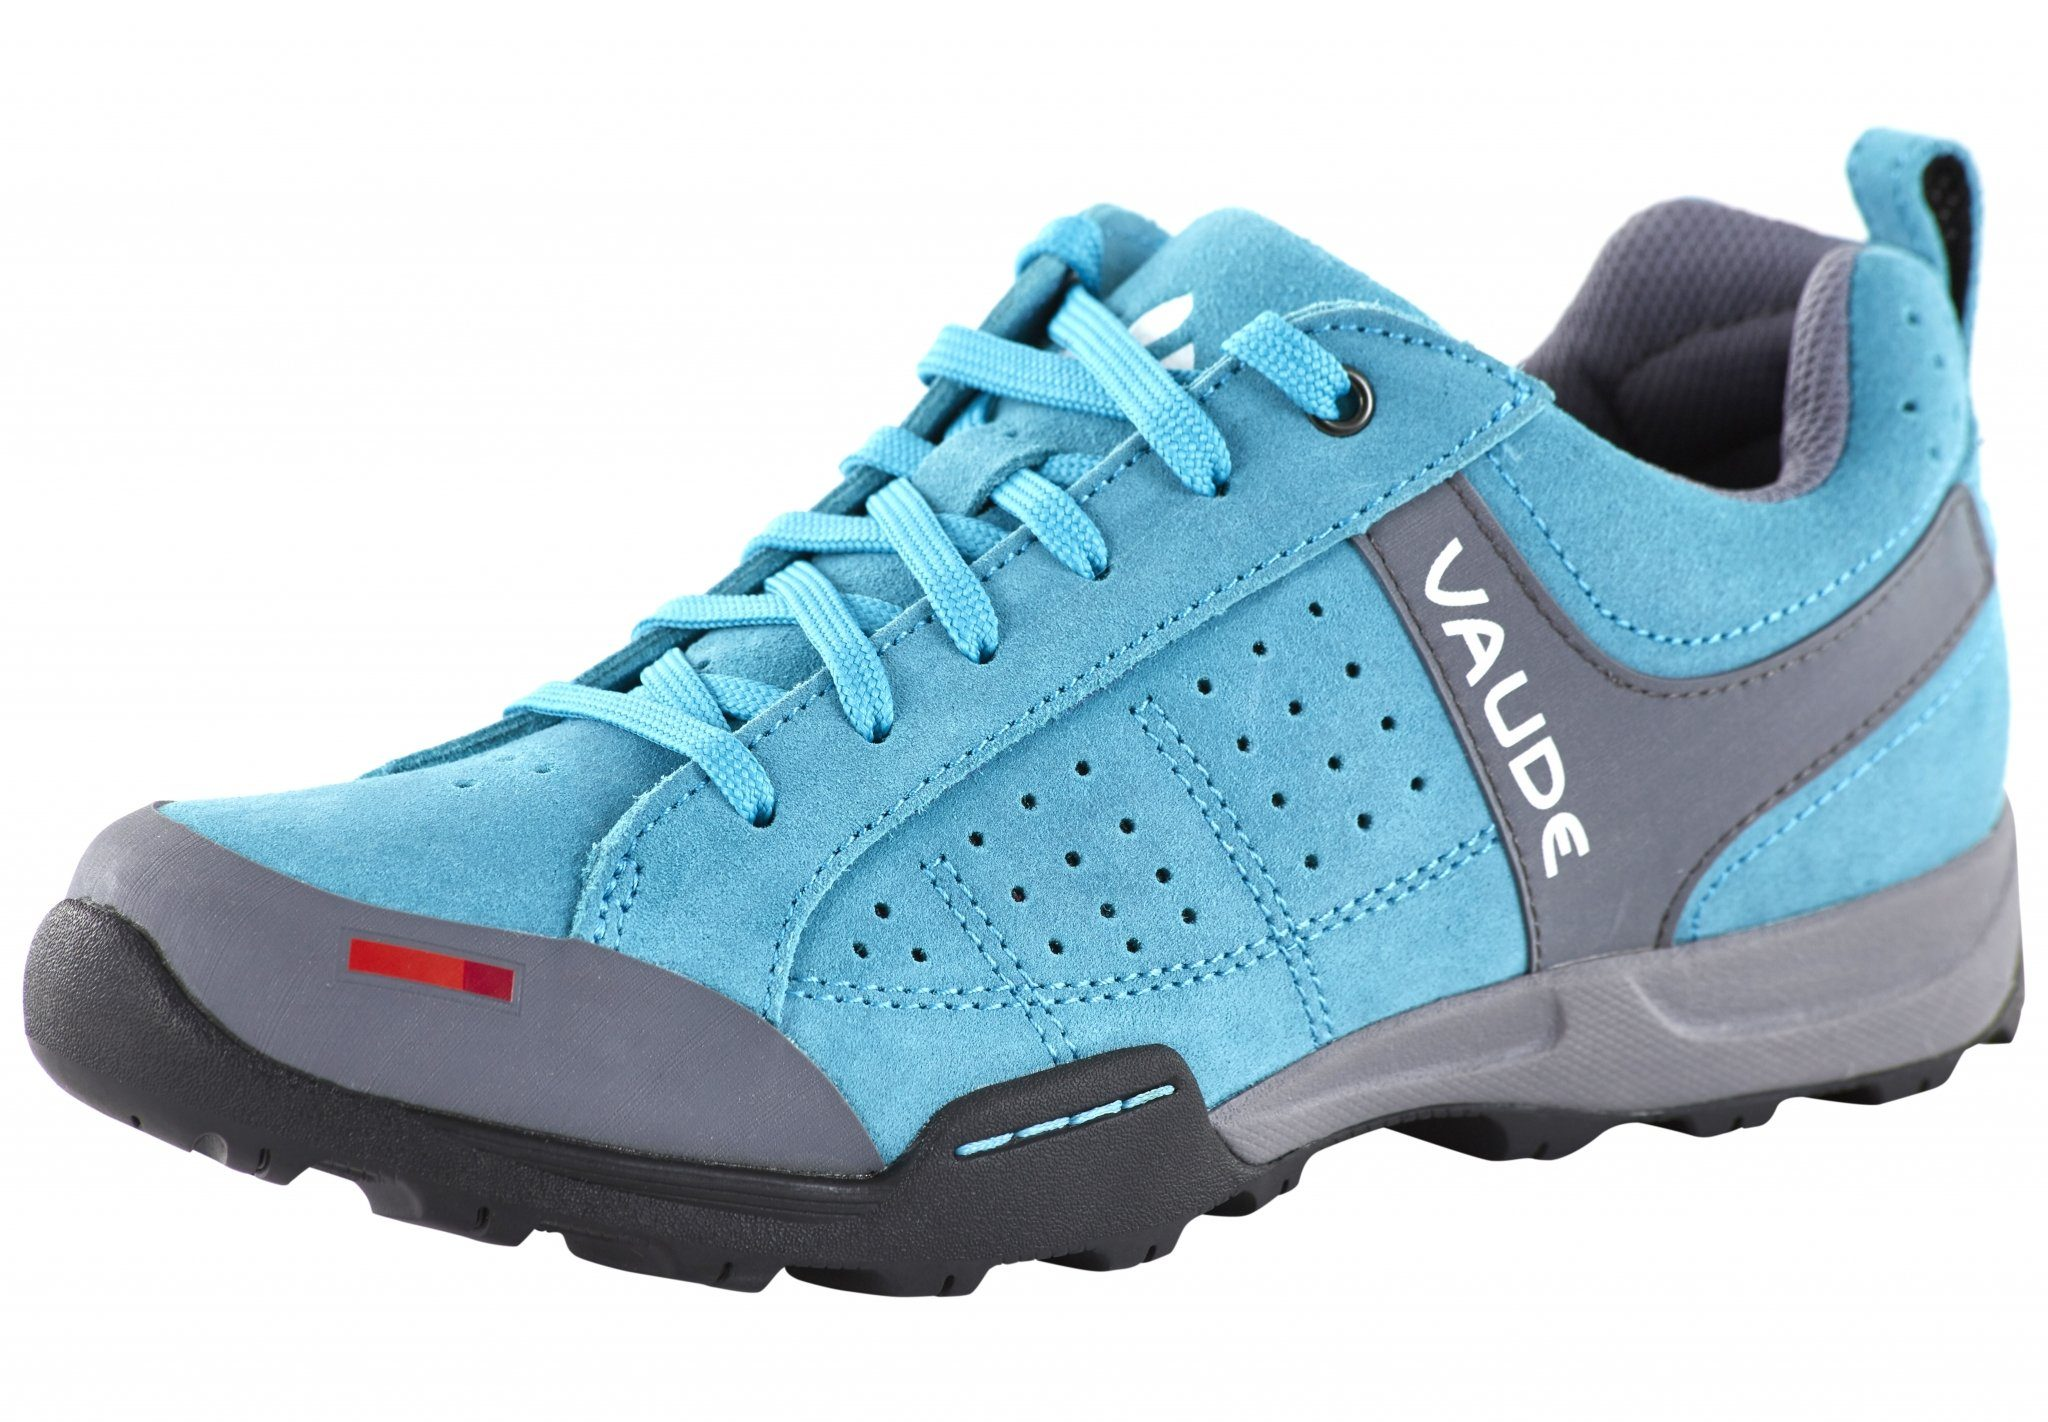 VAUDE Kletterschuh »Leva Shoes Women«